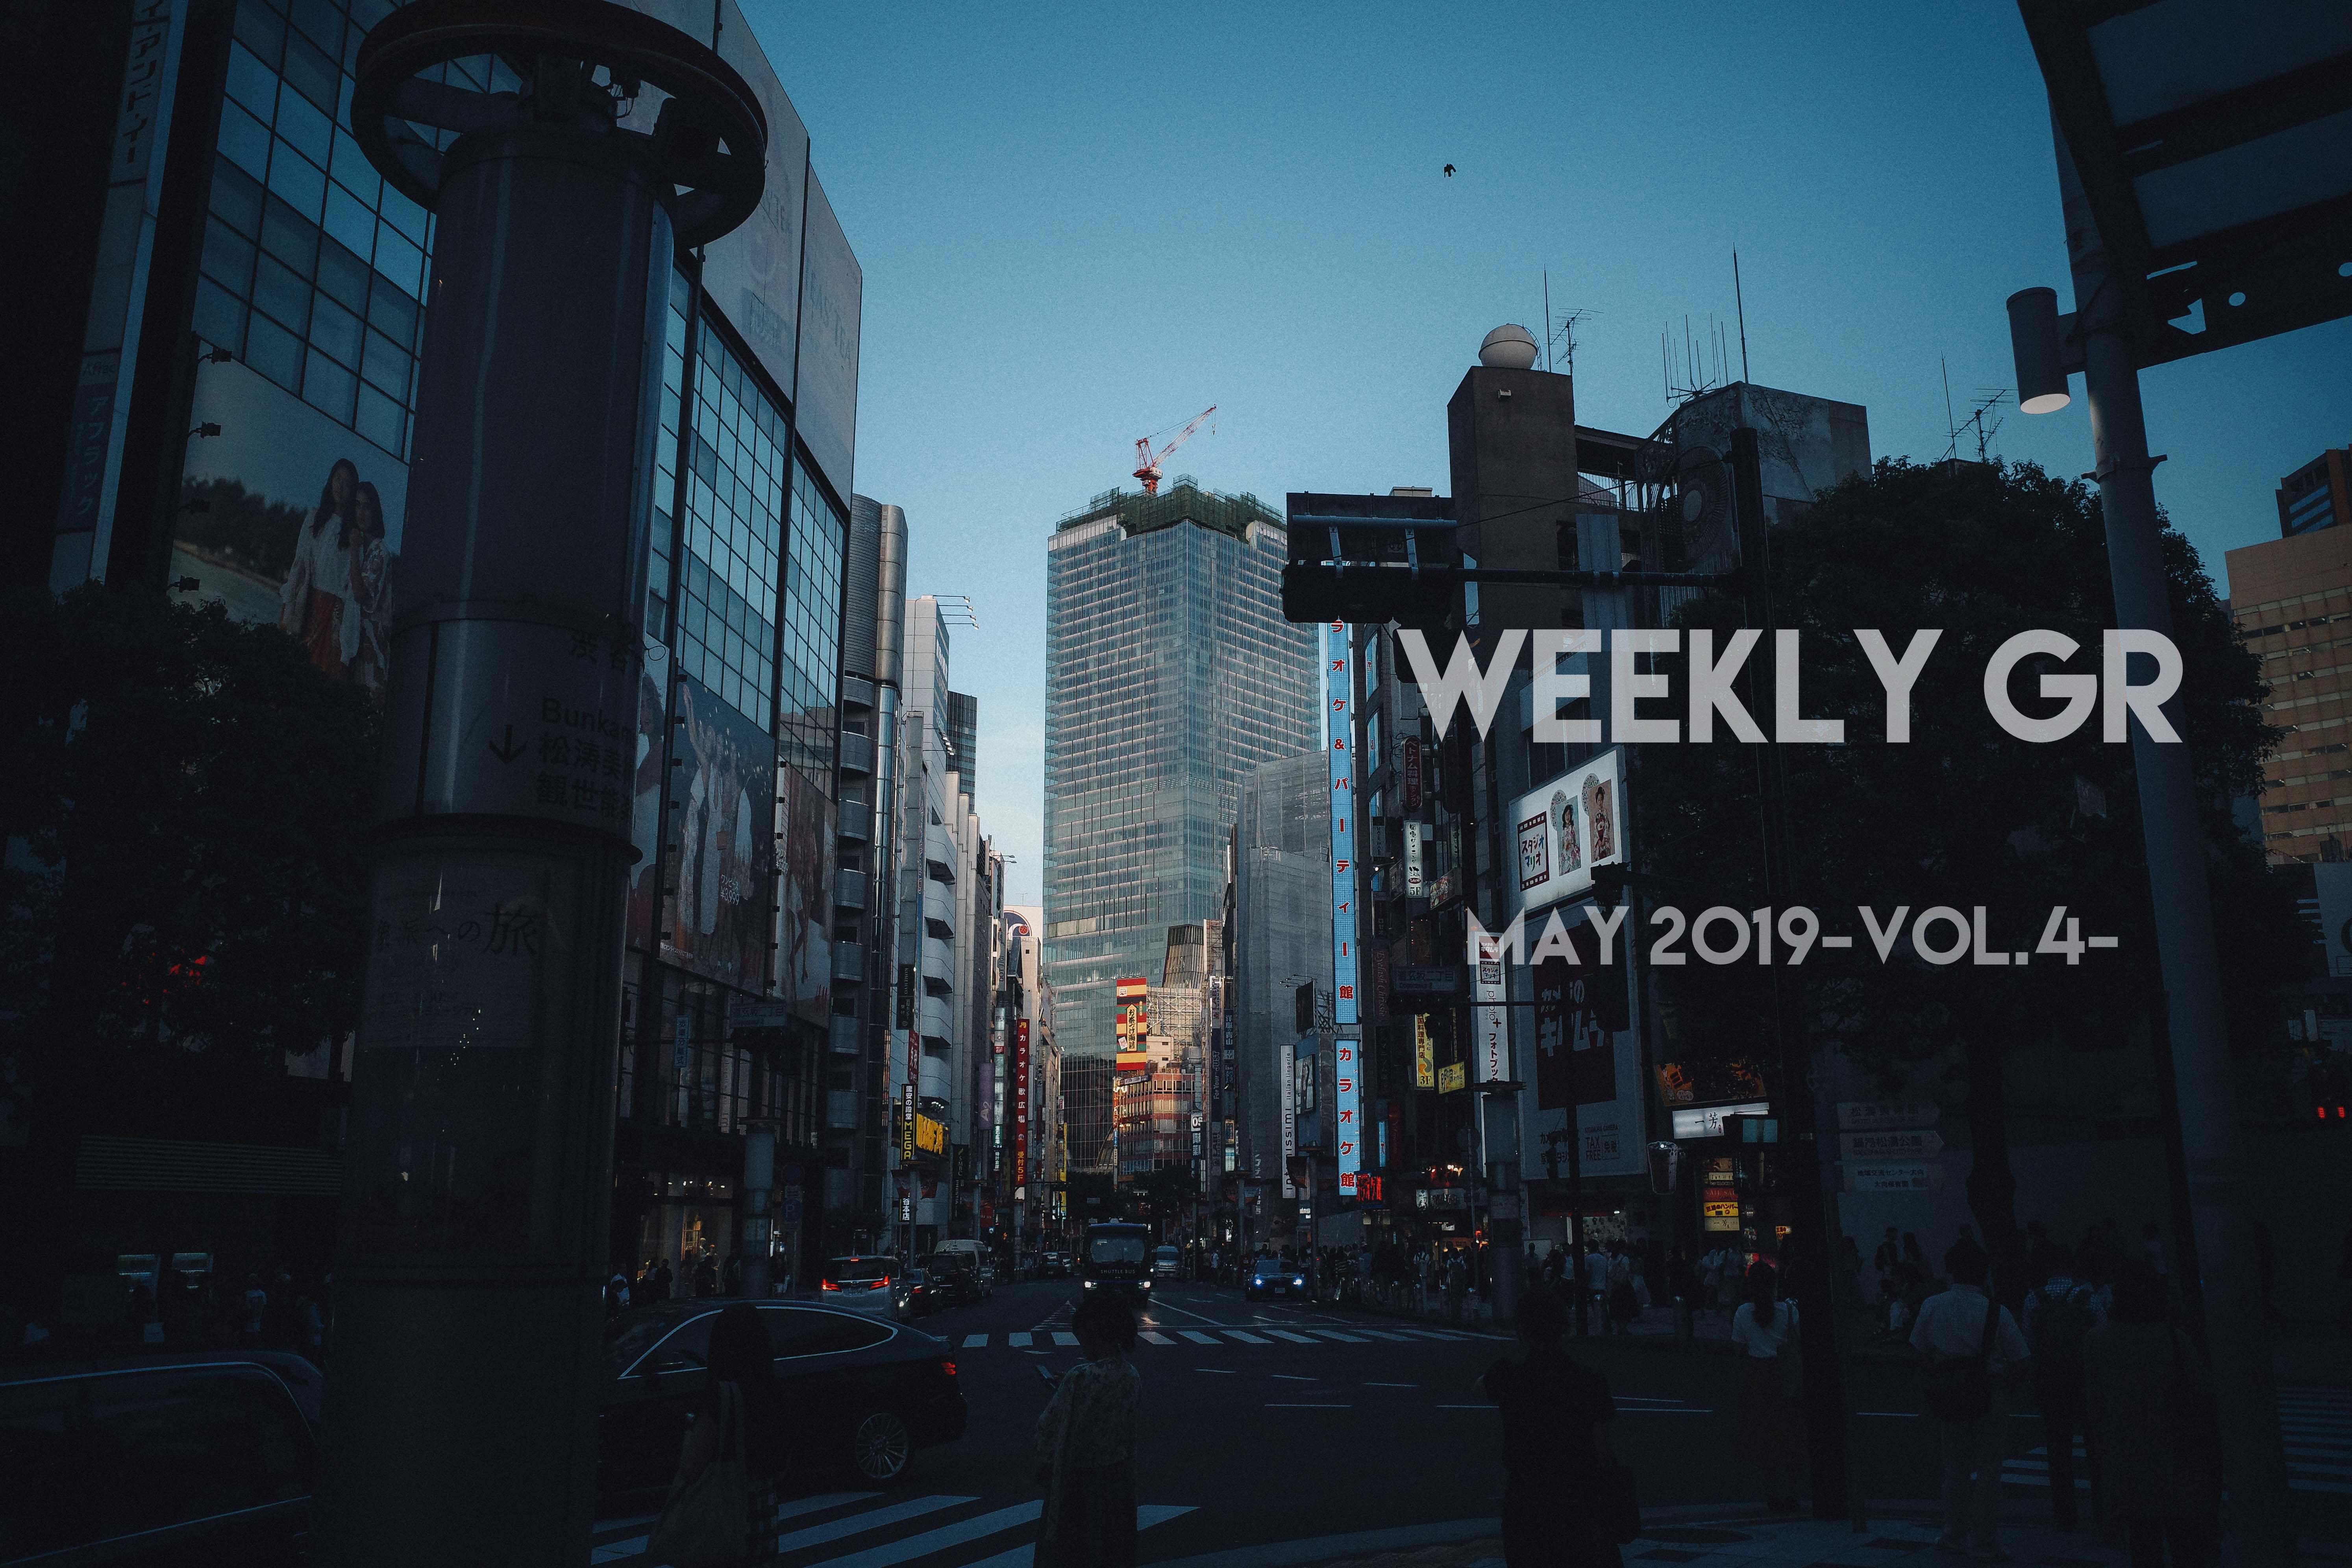 WEELKY GR|May 2019-Vol.4-